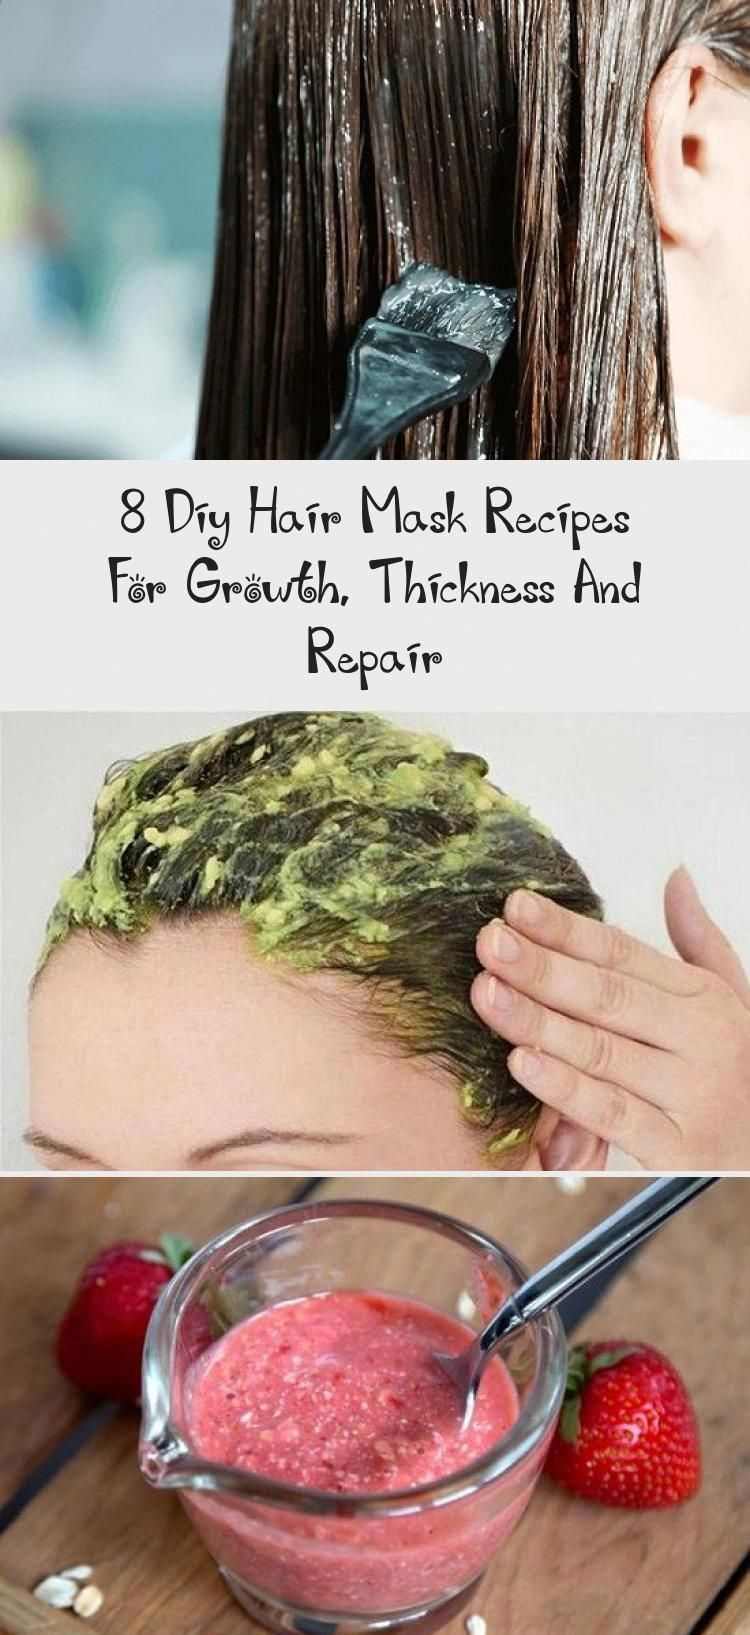 How To Fix Orange Roots Do 1 4 Honey To 1 Part Apple Cider Vinegar Leave On Hair For 2 Hours Wear A Shower Cap Rinse With Roots Hair Brassy Hair Hair Fixing